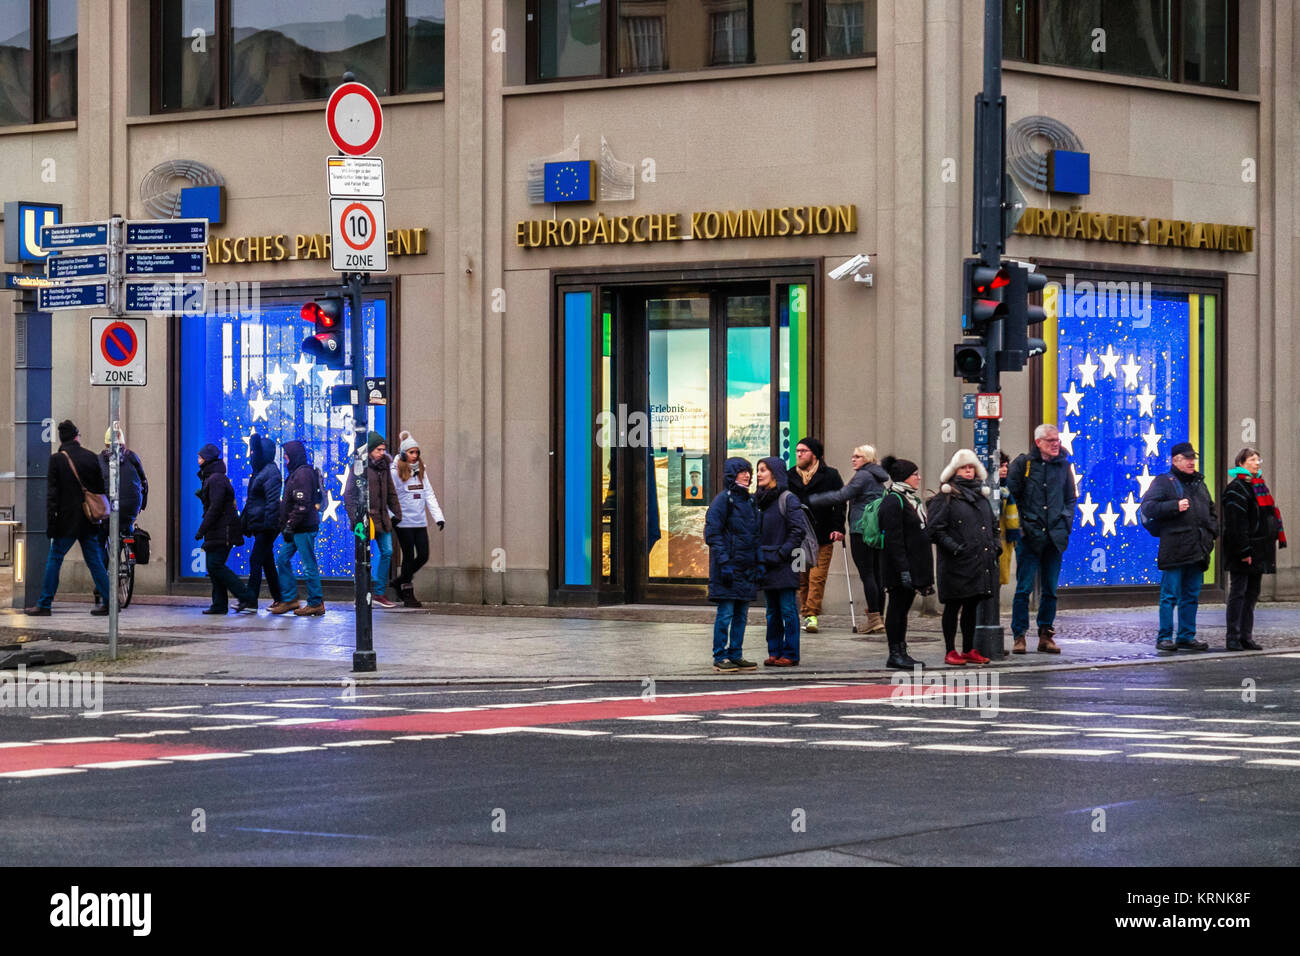 Berlin Mitte,Unter den Linden.European Union Commission, Europaische Kommission information office - Stock Image